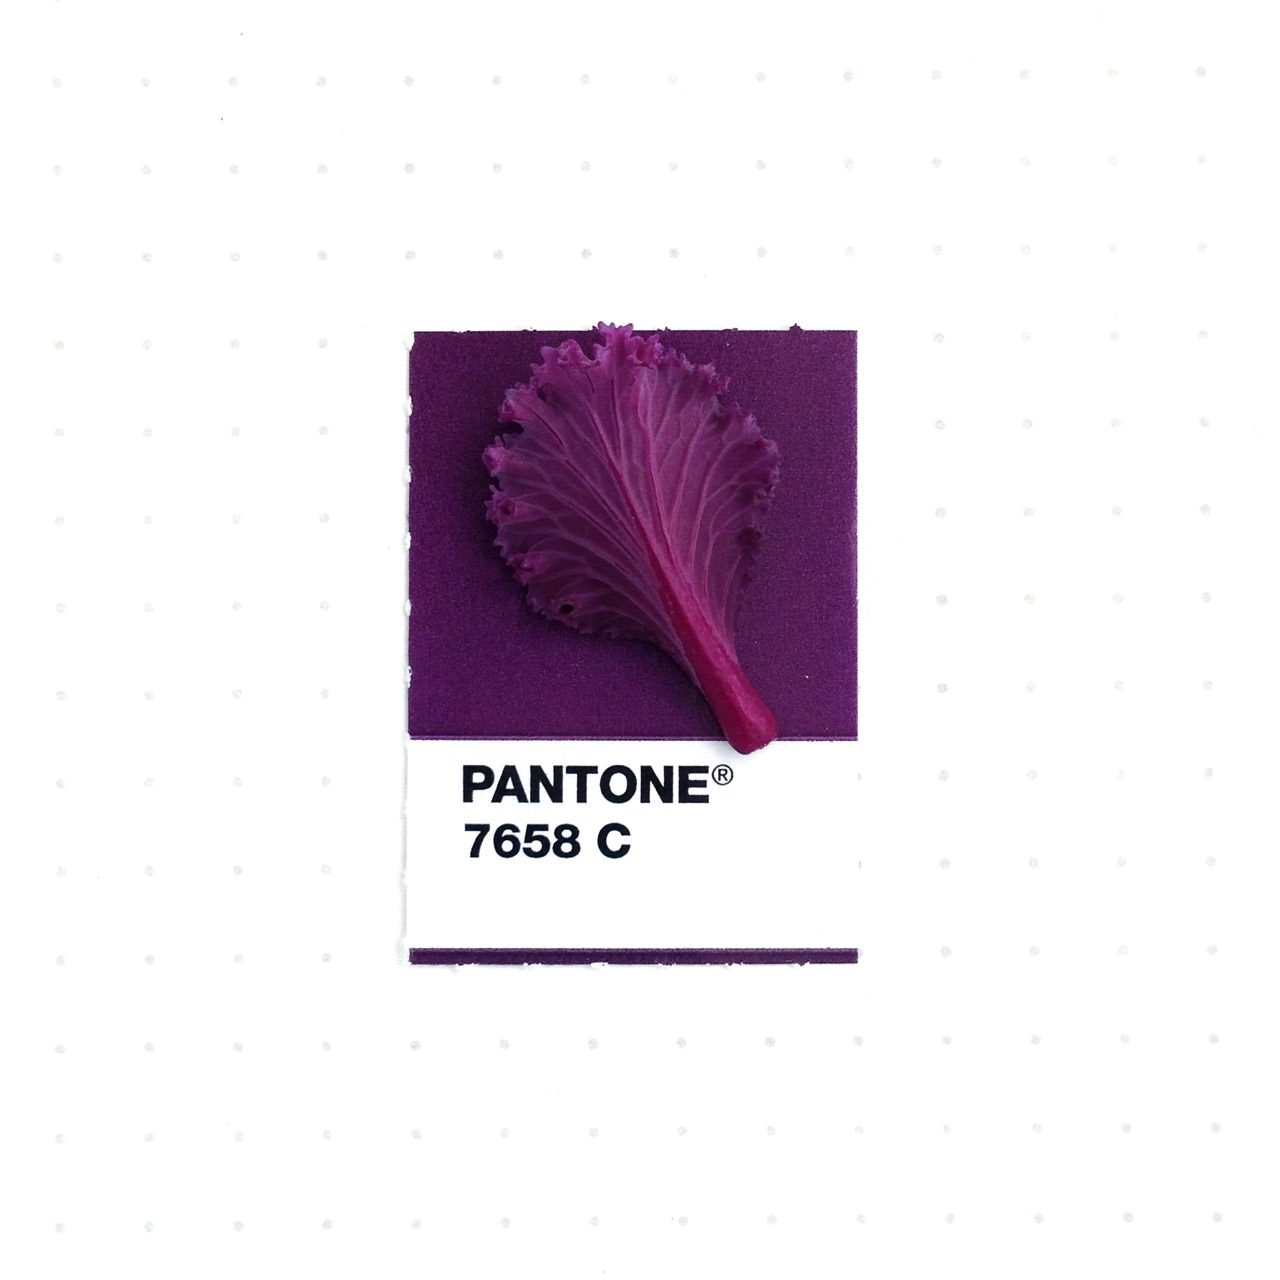 bridging-life-and-design-in-15-pantone-color-matches-13